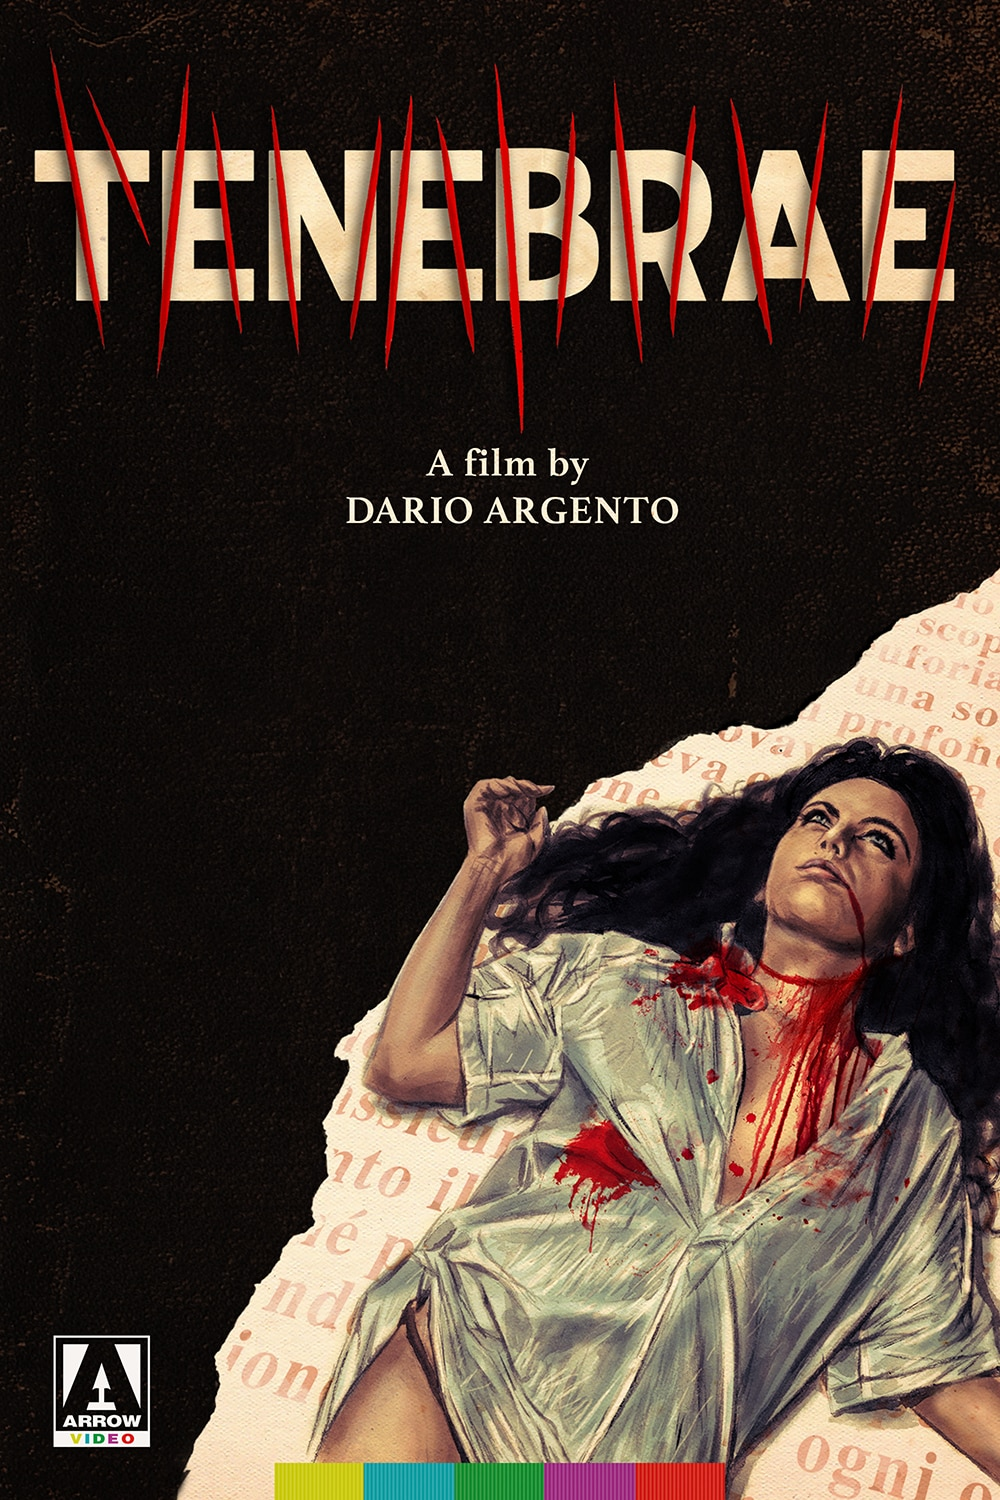 unnamed 11 - Arrow Video Channel's August Films Include LAKE MICHIGAN MONSTER, TENEBRAE & CHILDREN OF THE CORN